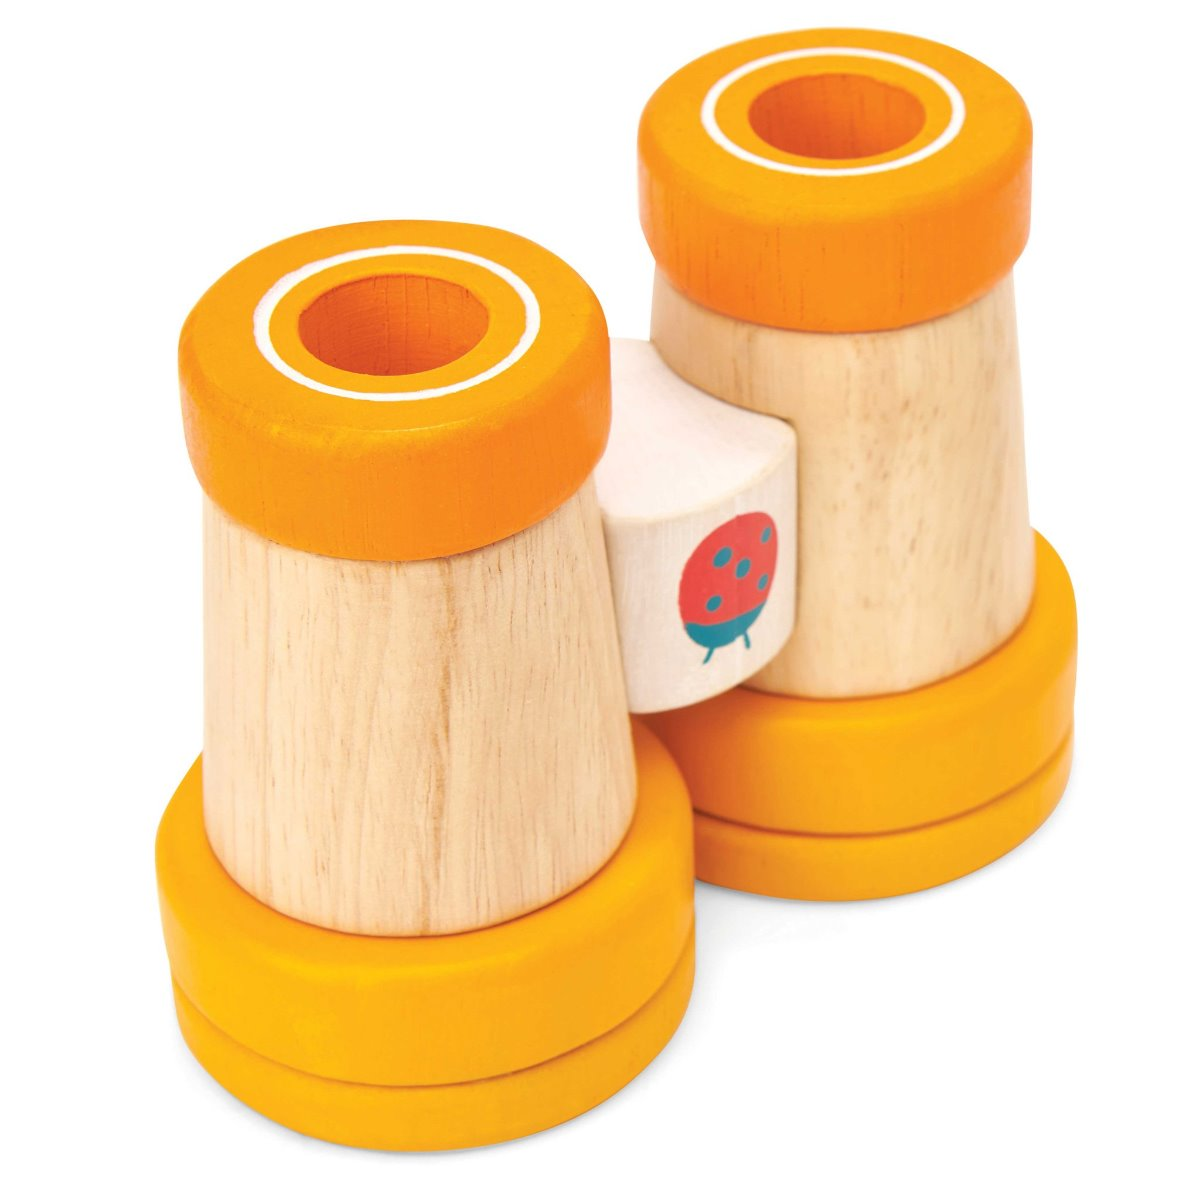 Le Toy Van Petilou Wooden Binoculars with Kaleidoscope lenses